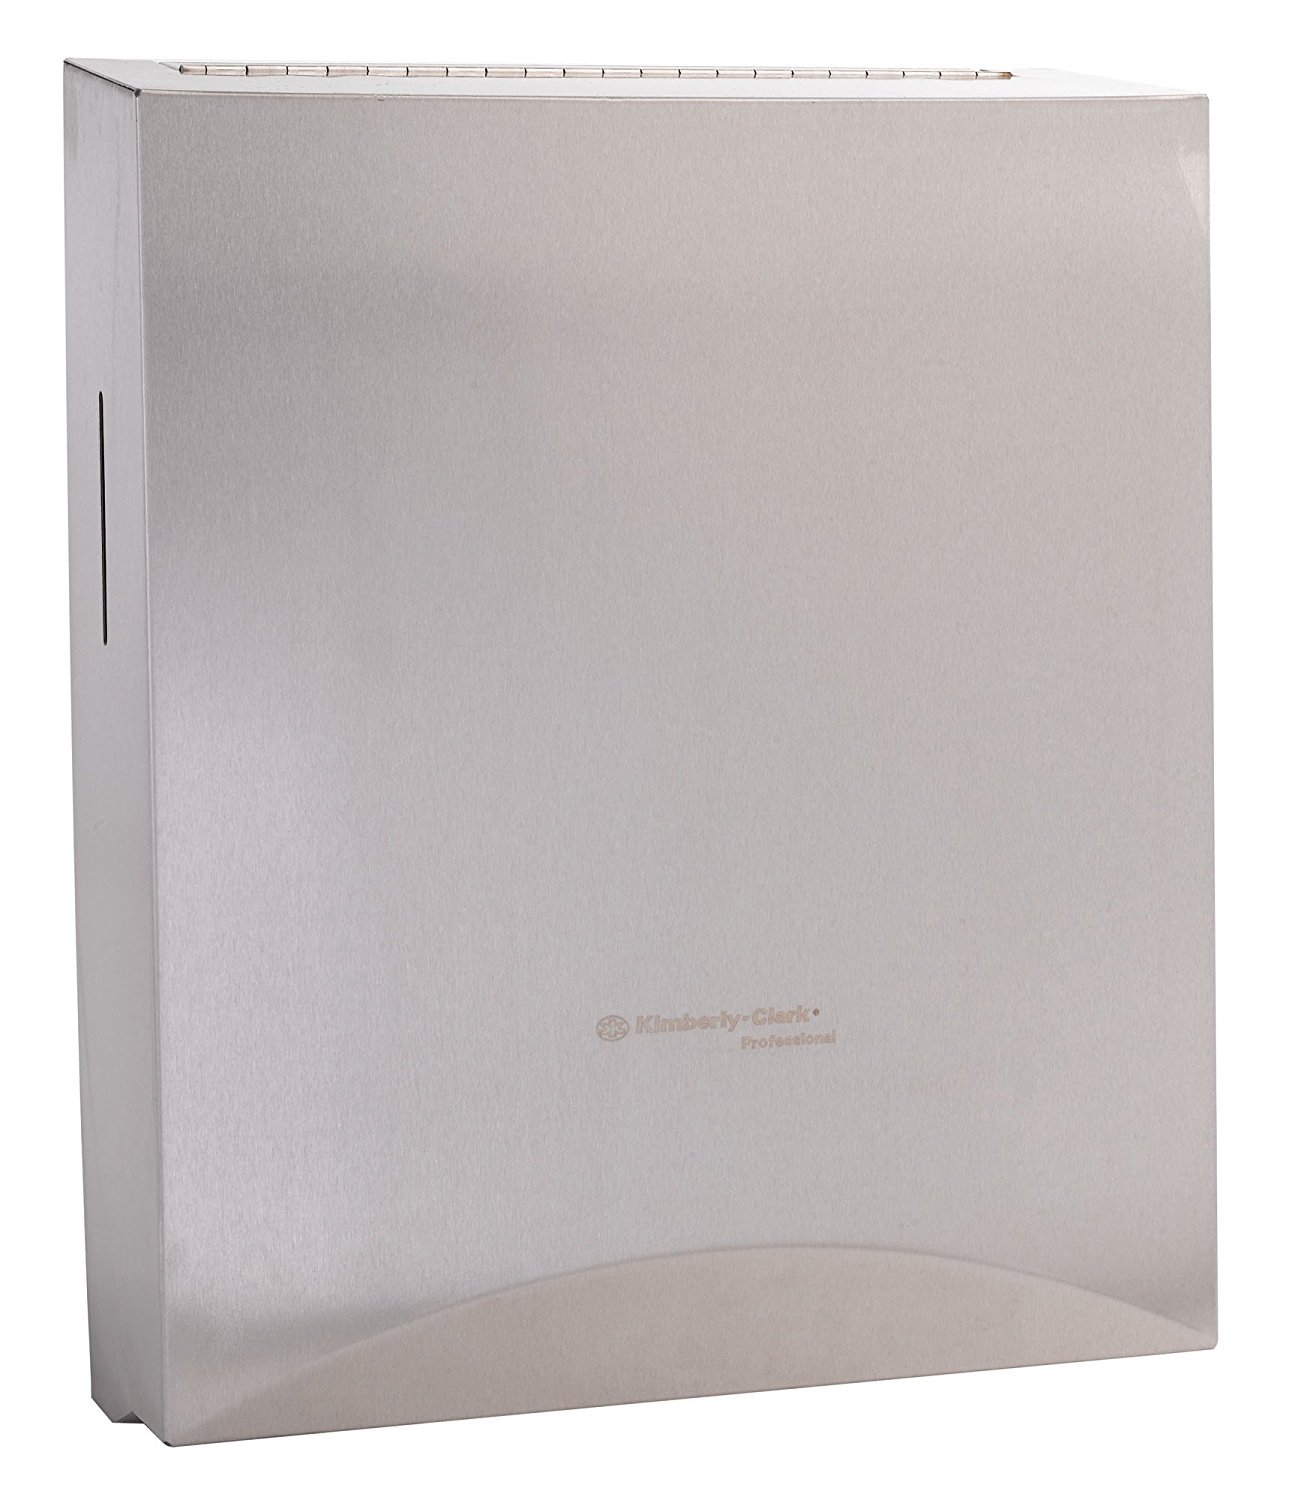 Kimberly Clark Kcc 09998 No Touch Hr Towel Disp Stainless Steel KCC 09998